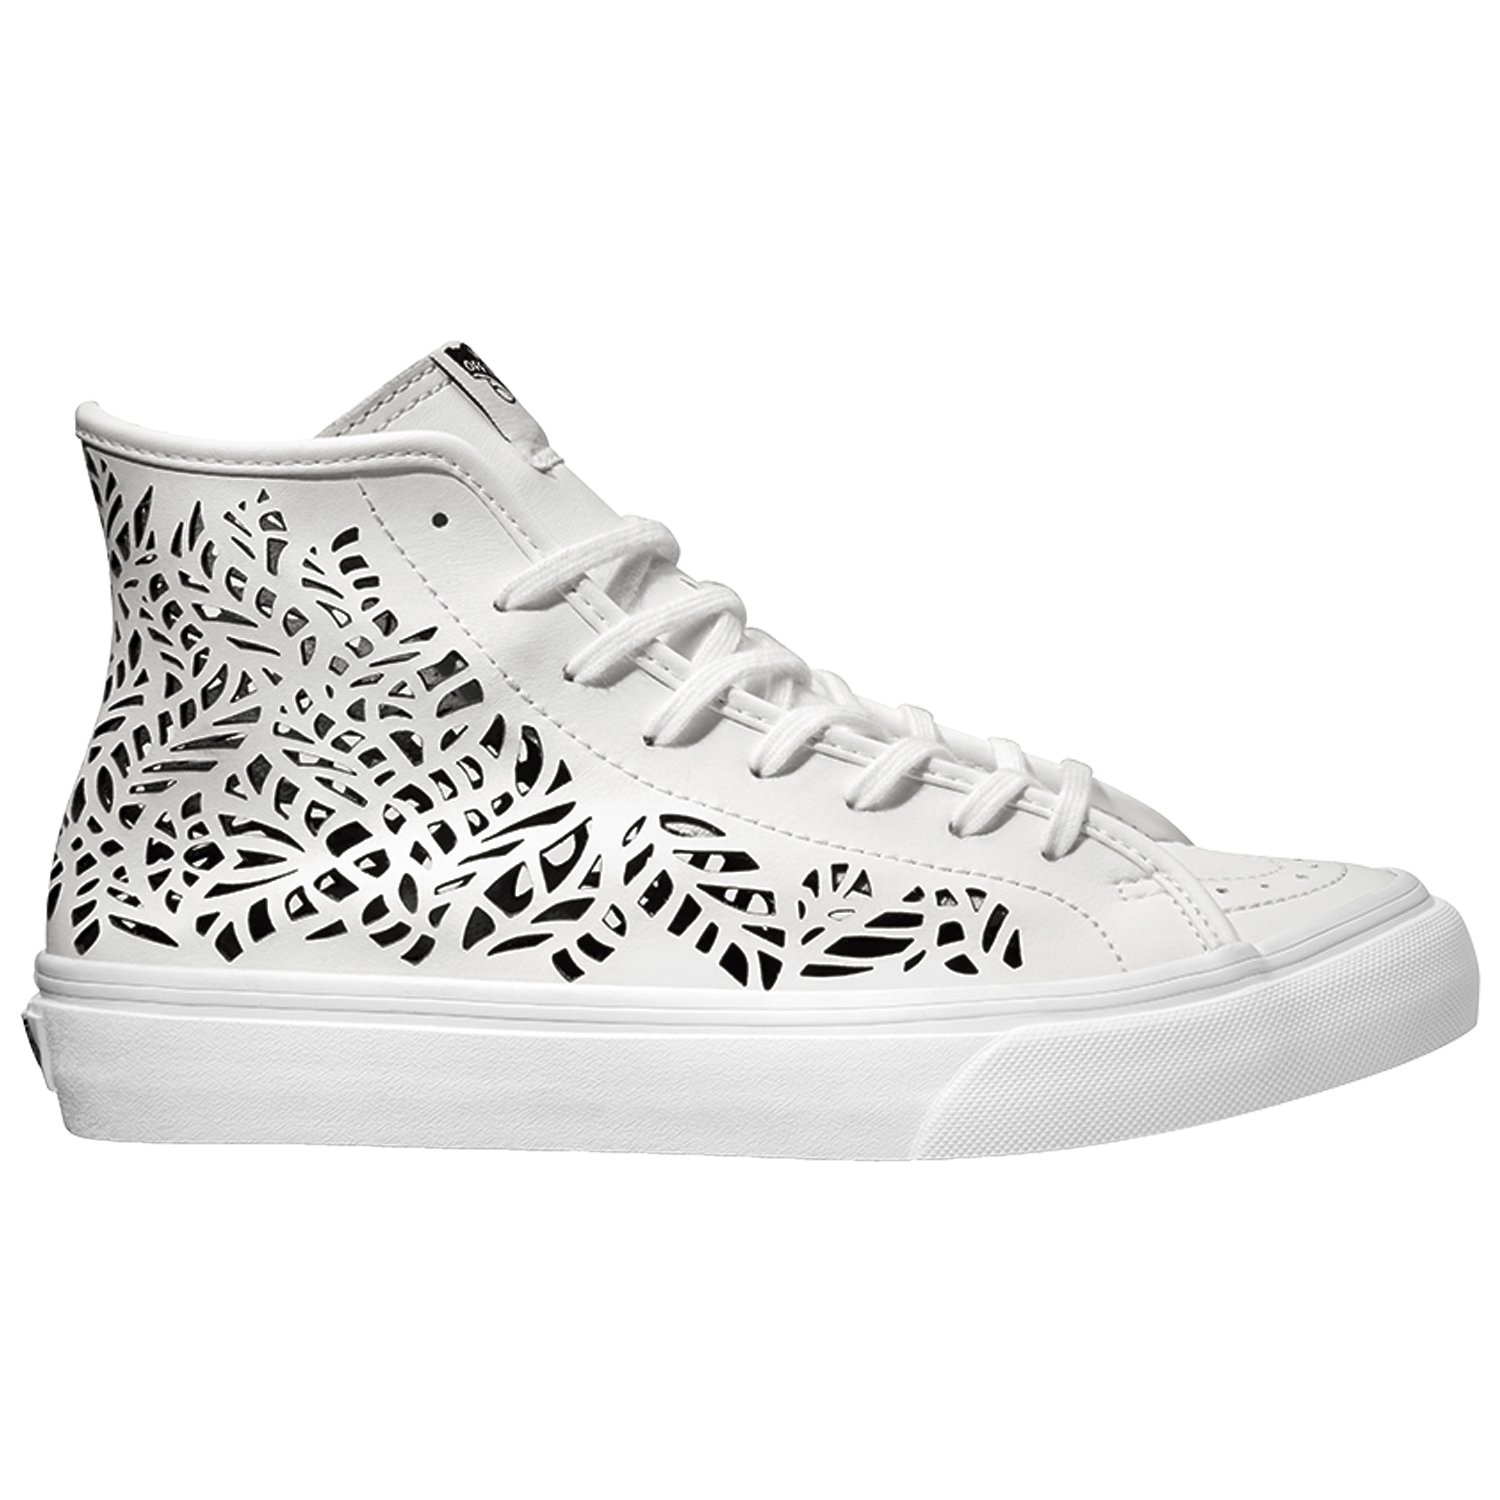 vans-sk8-hi-decon-cut-out-leaves-white-199-90